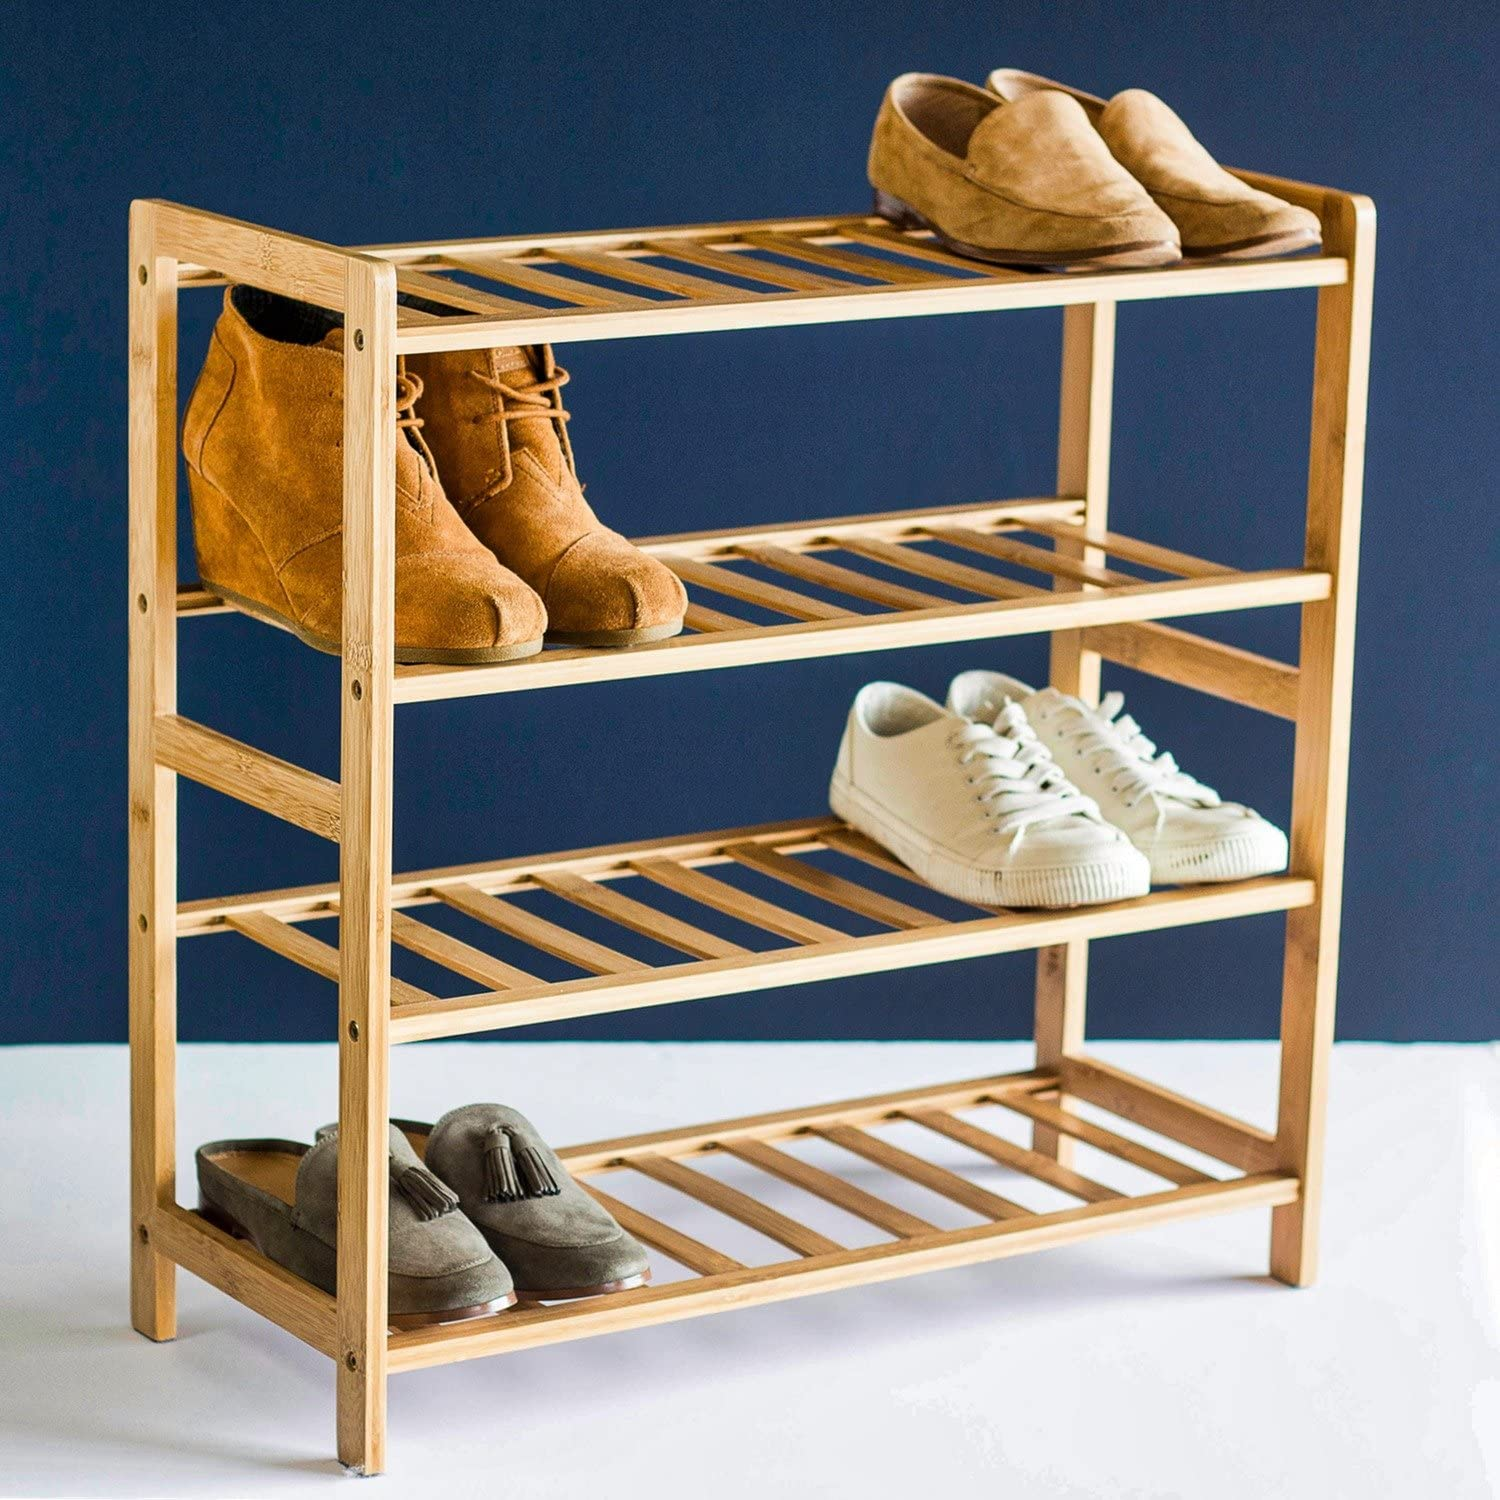 STNDRD. Bamboo Wooden Shoe Rack Organizer